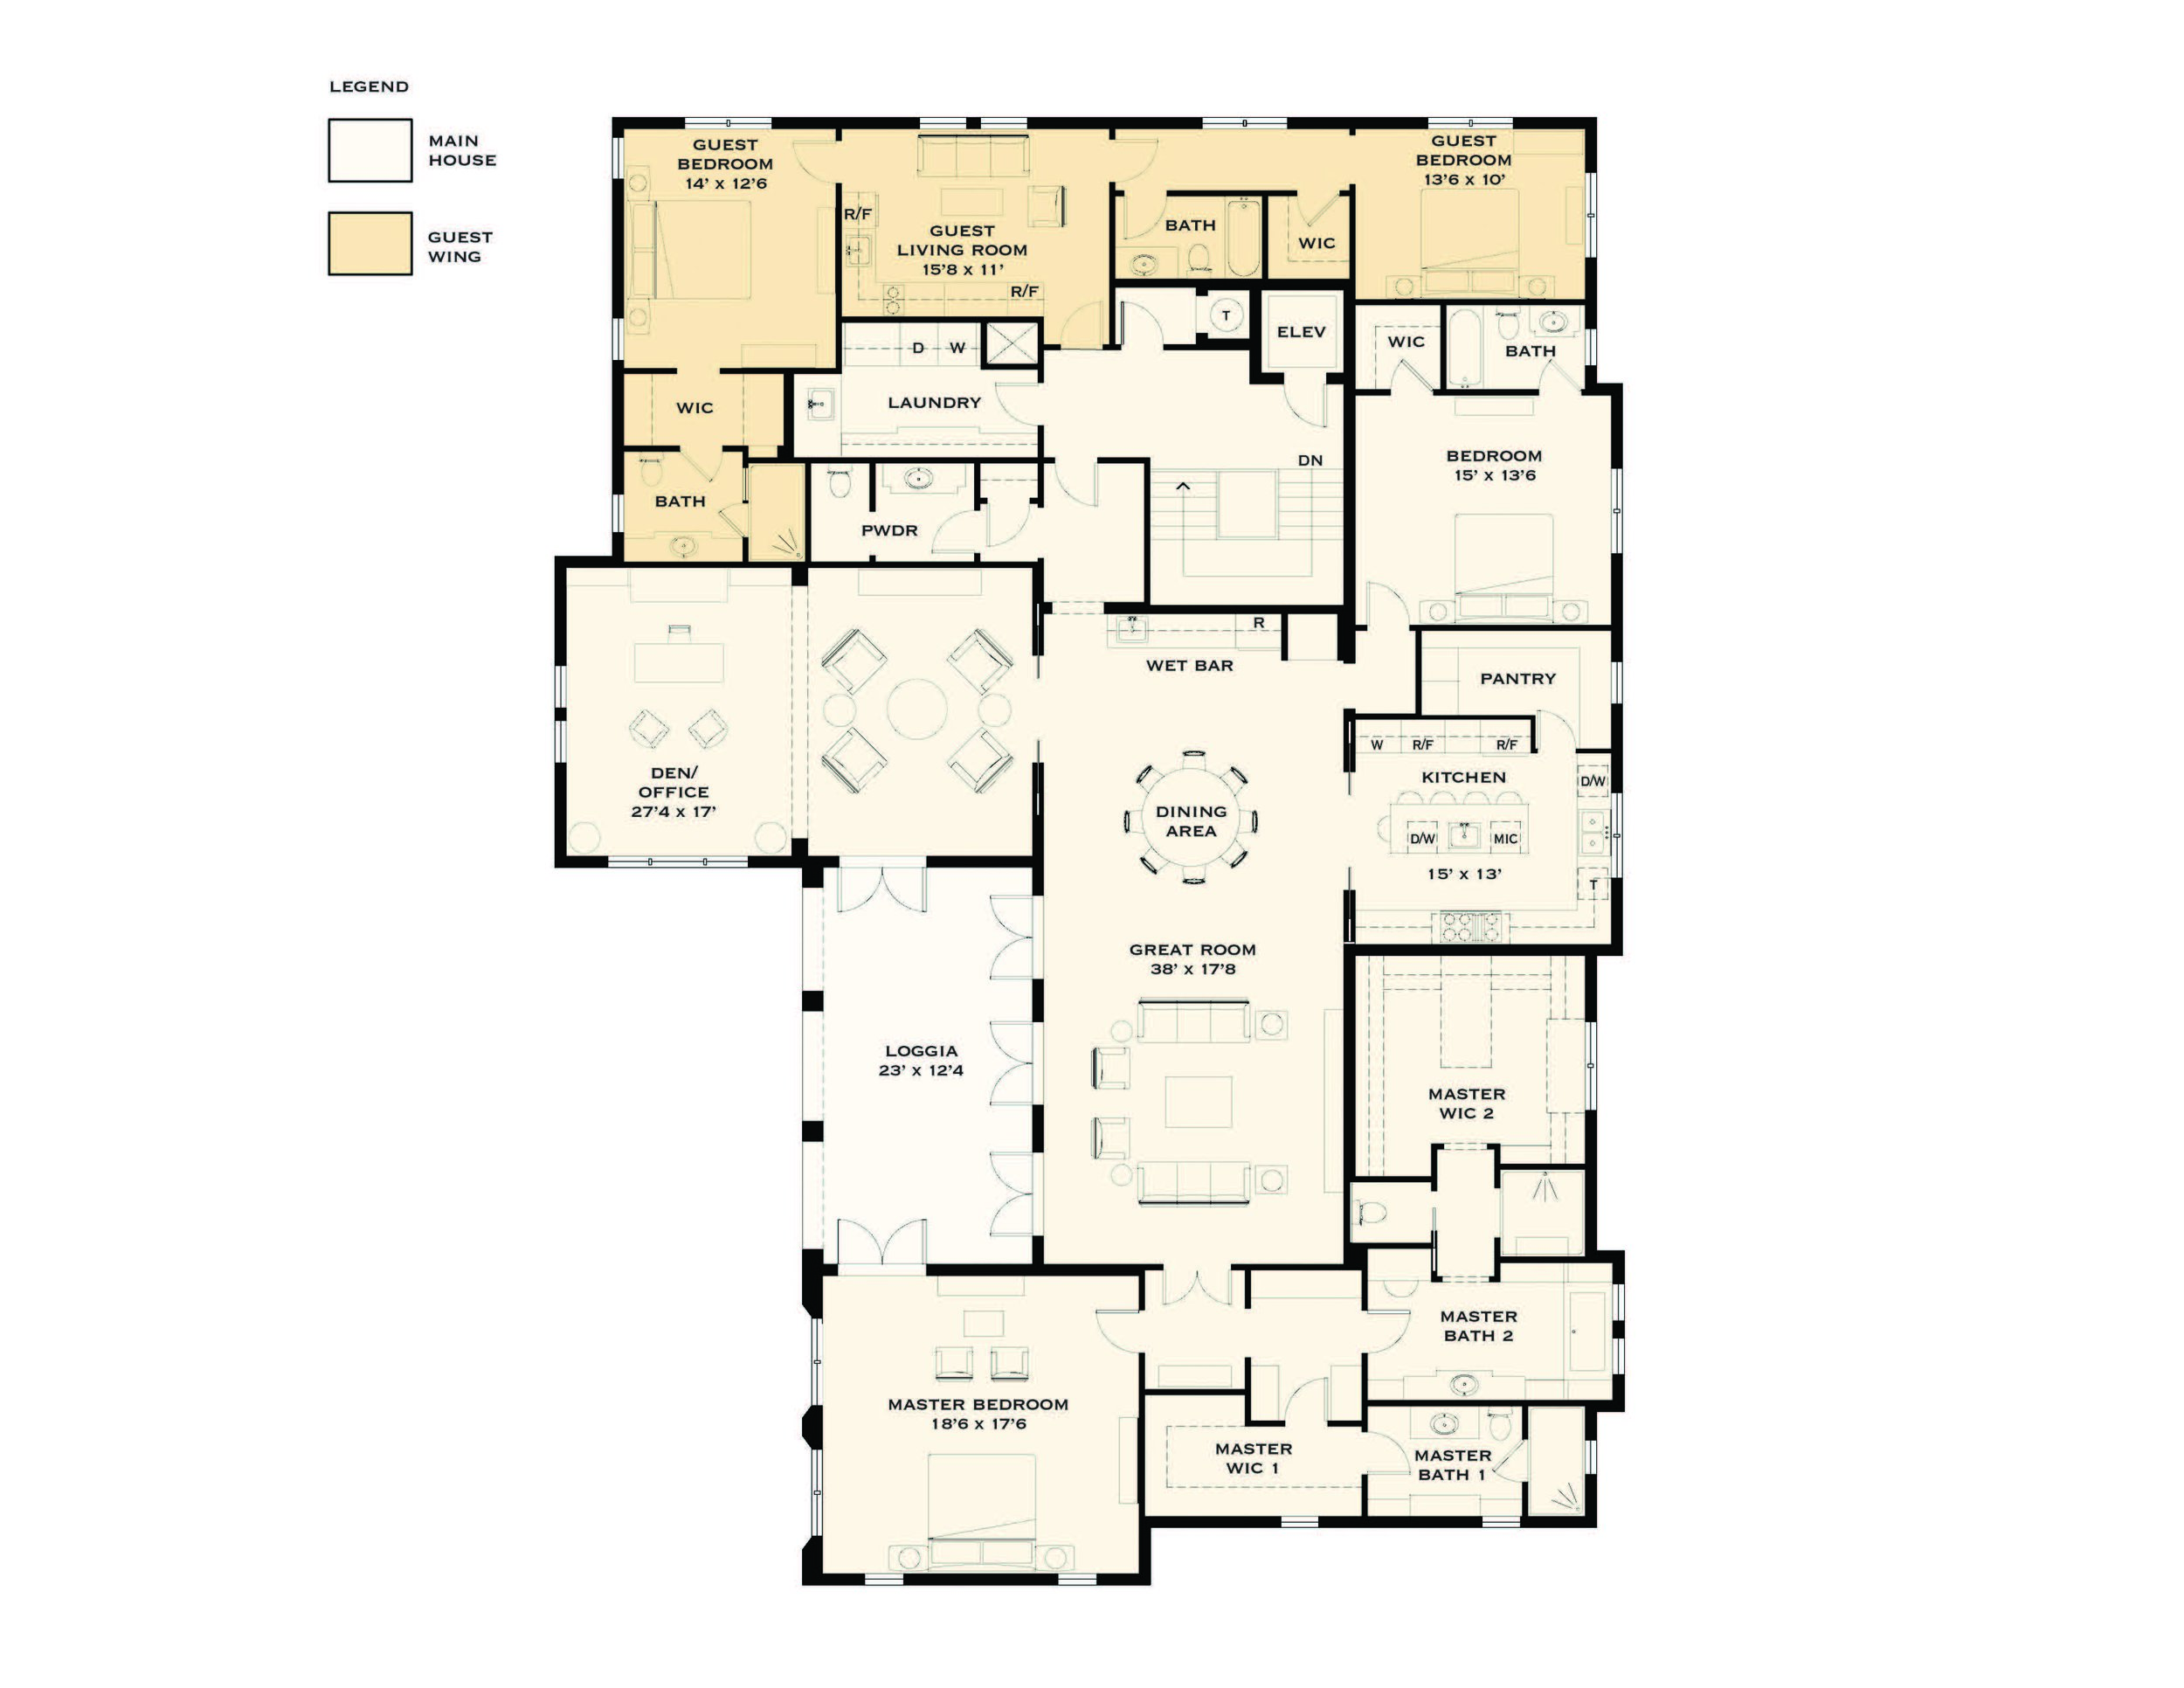 Residence 6 Floor Plan 2nd Floor.jpg